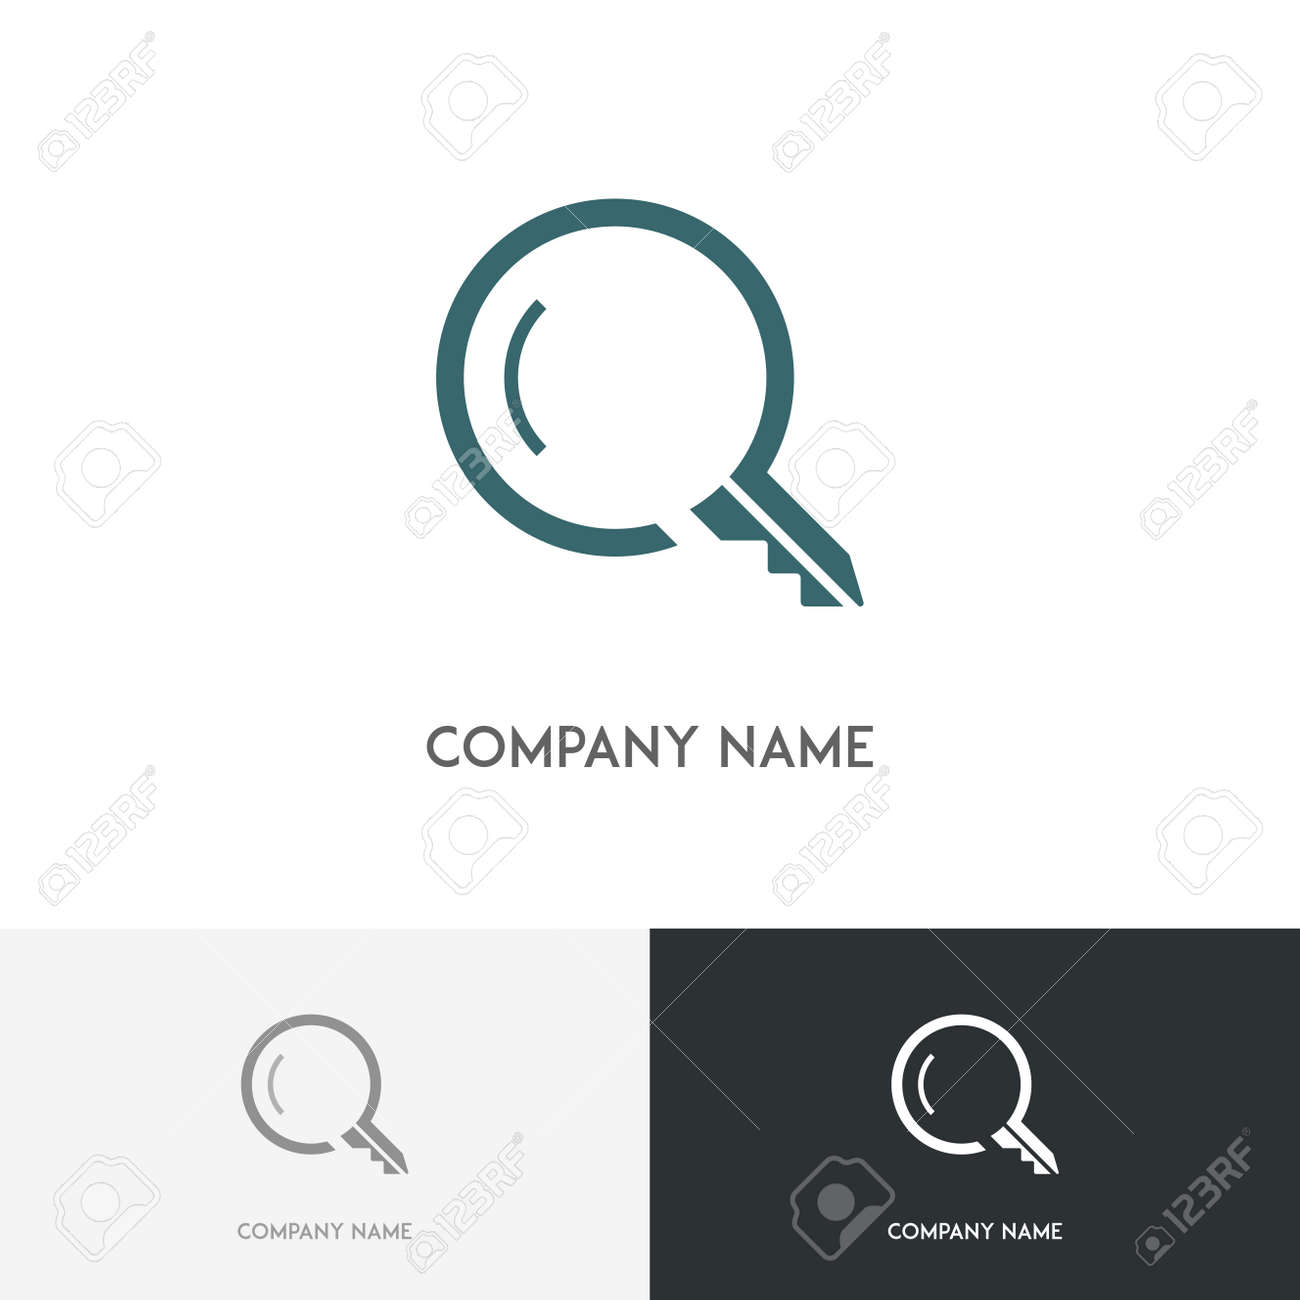 Real Estate Logo Search Magnifier And Key Symbol On The White